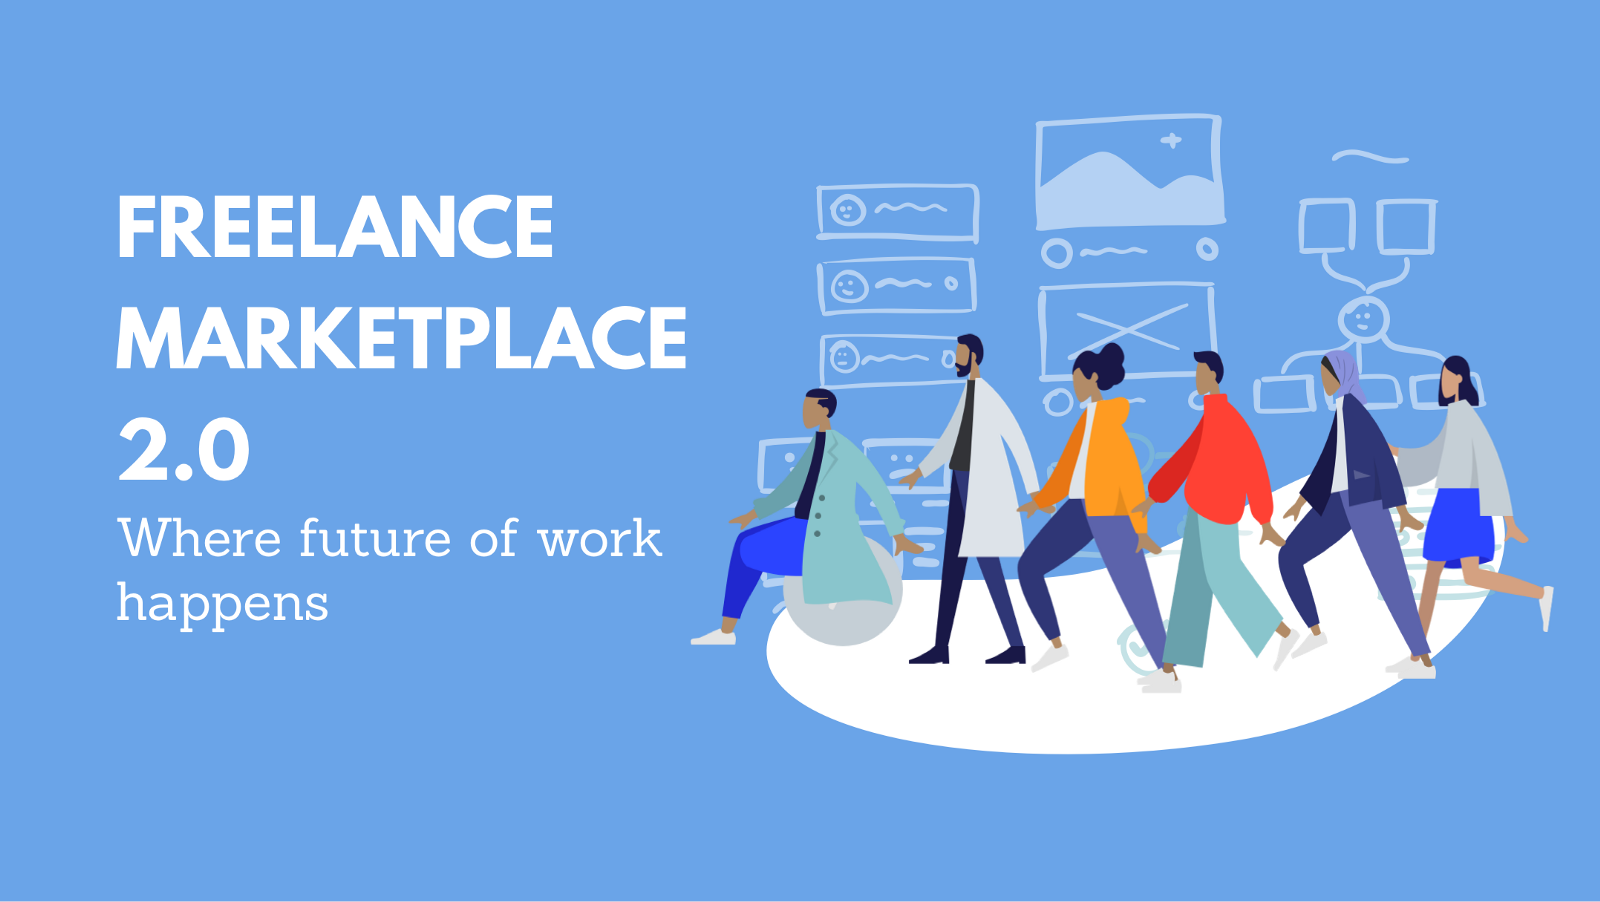 /freelance-marketplace-2-0-where-future-of-work-happens-1a92ada76725 feature image